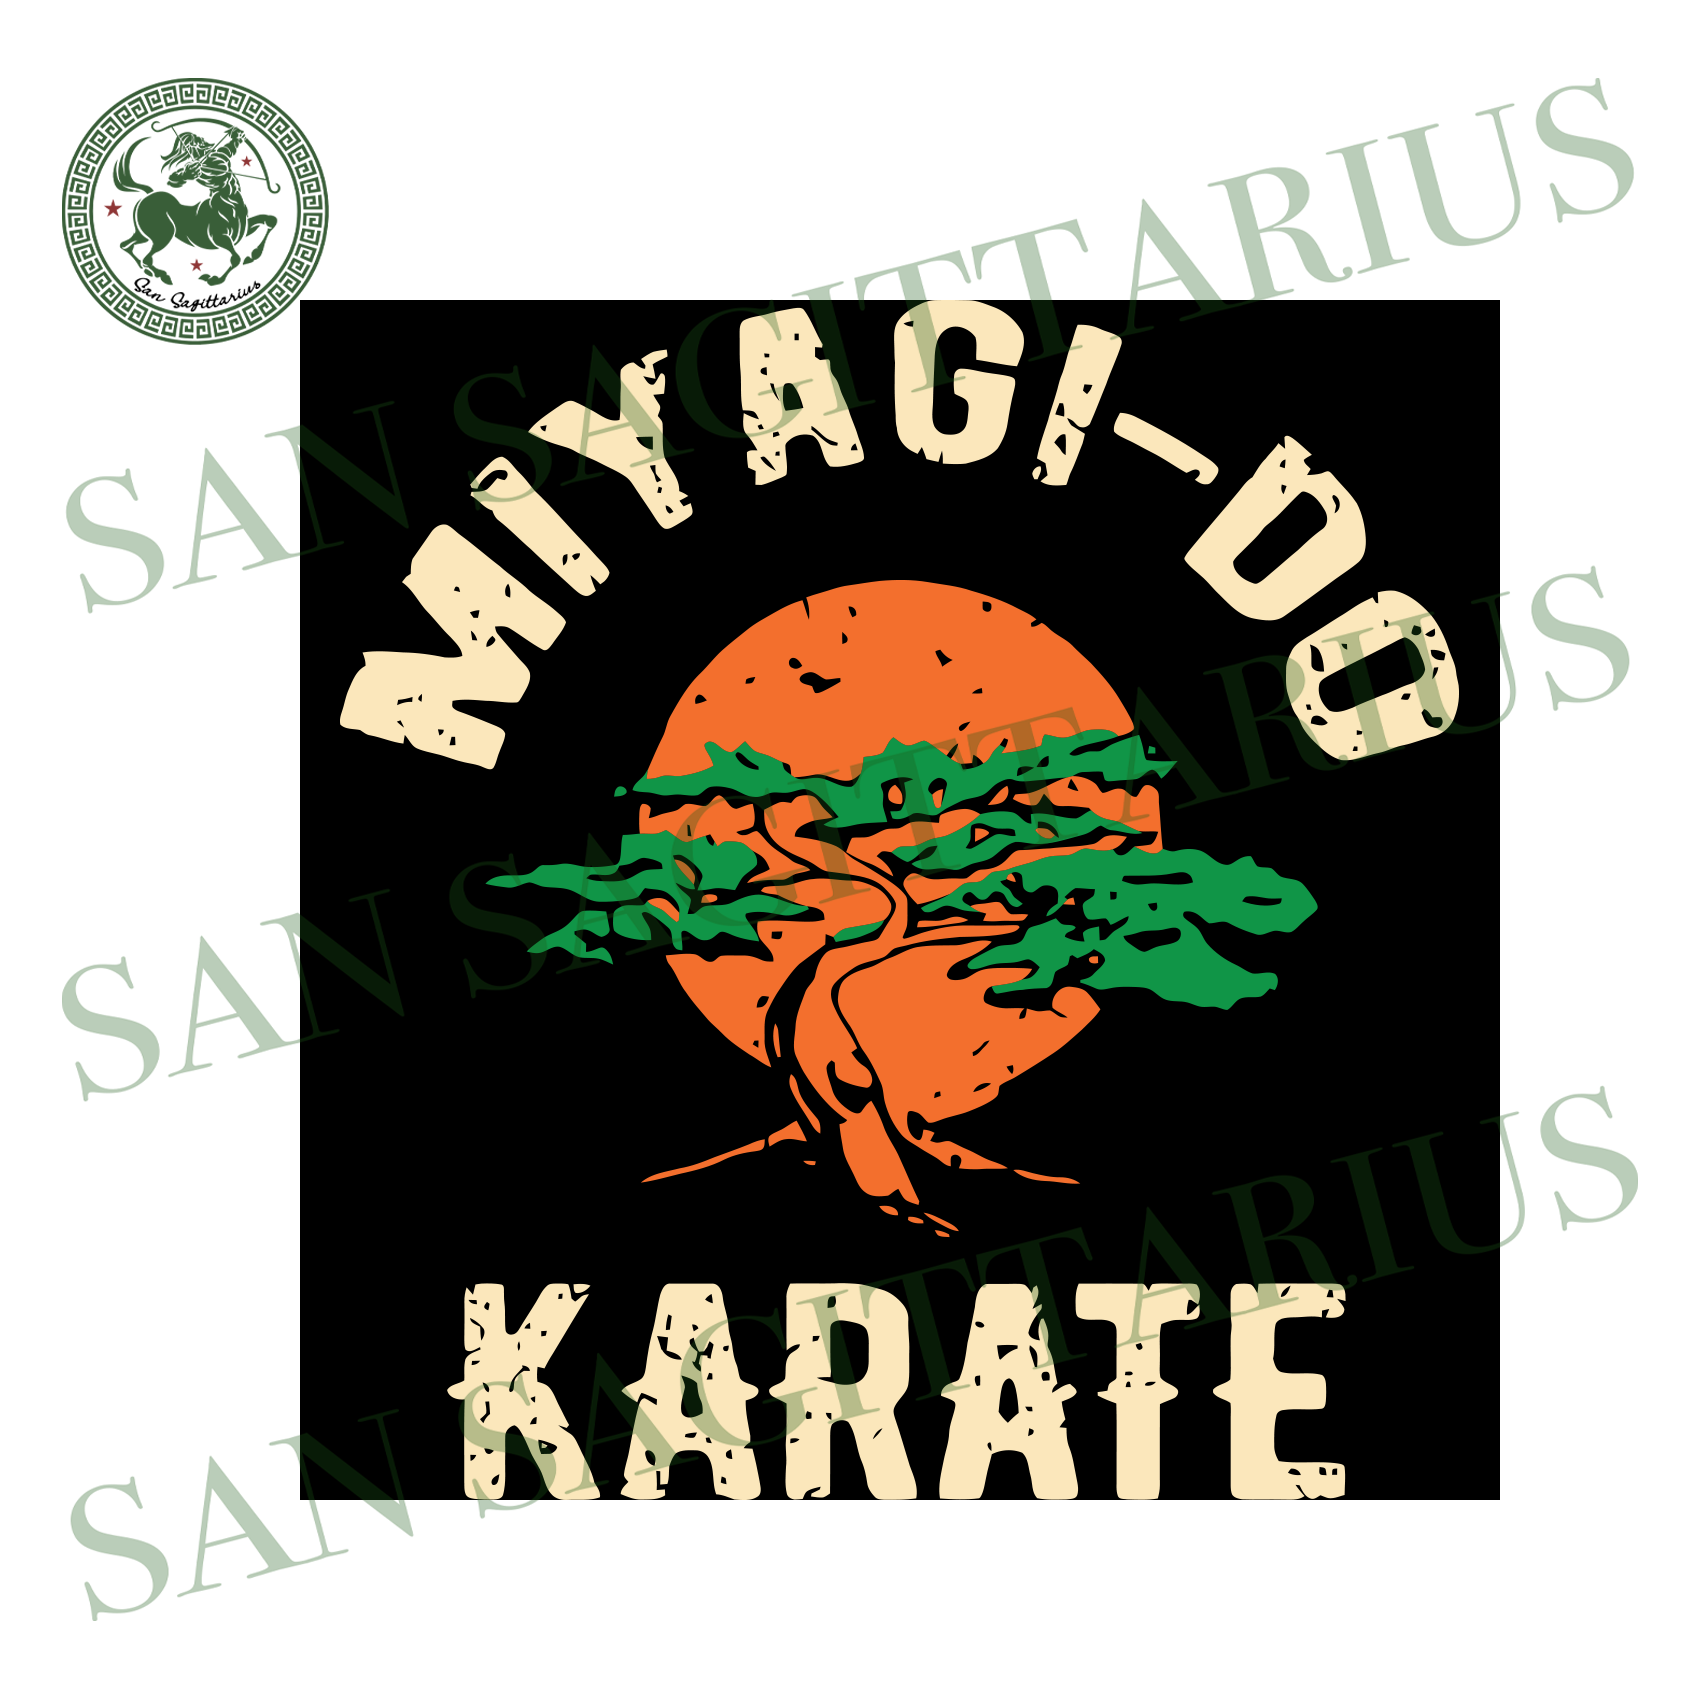 Miyagi Do Karate, Trending Svg, Bonsai Svg, Bonsai Karate Logo, Love Bonsai, Bonsai Tree Logo, Miyagi Svg, Miyagi Do, Miyagi Do Lover, Logo Svg, Bonsai Shirt, Karate Svg, Tree Svg, Sun Svg, J